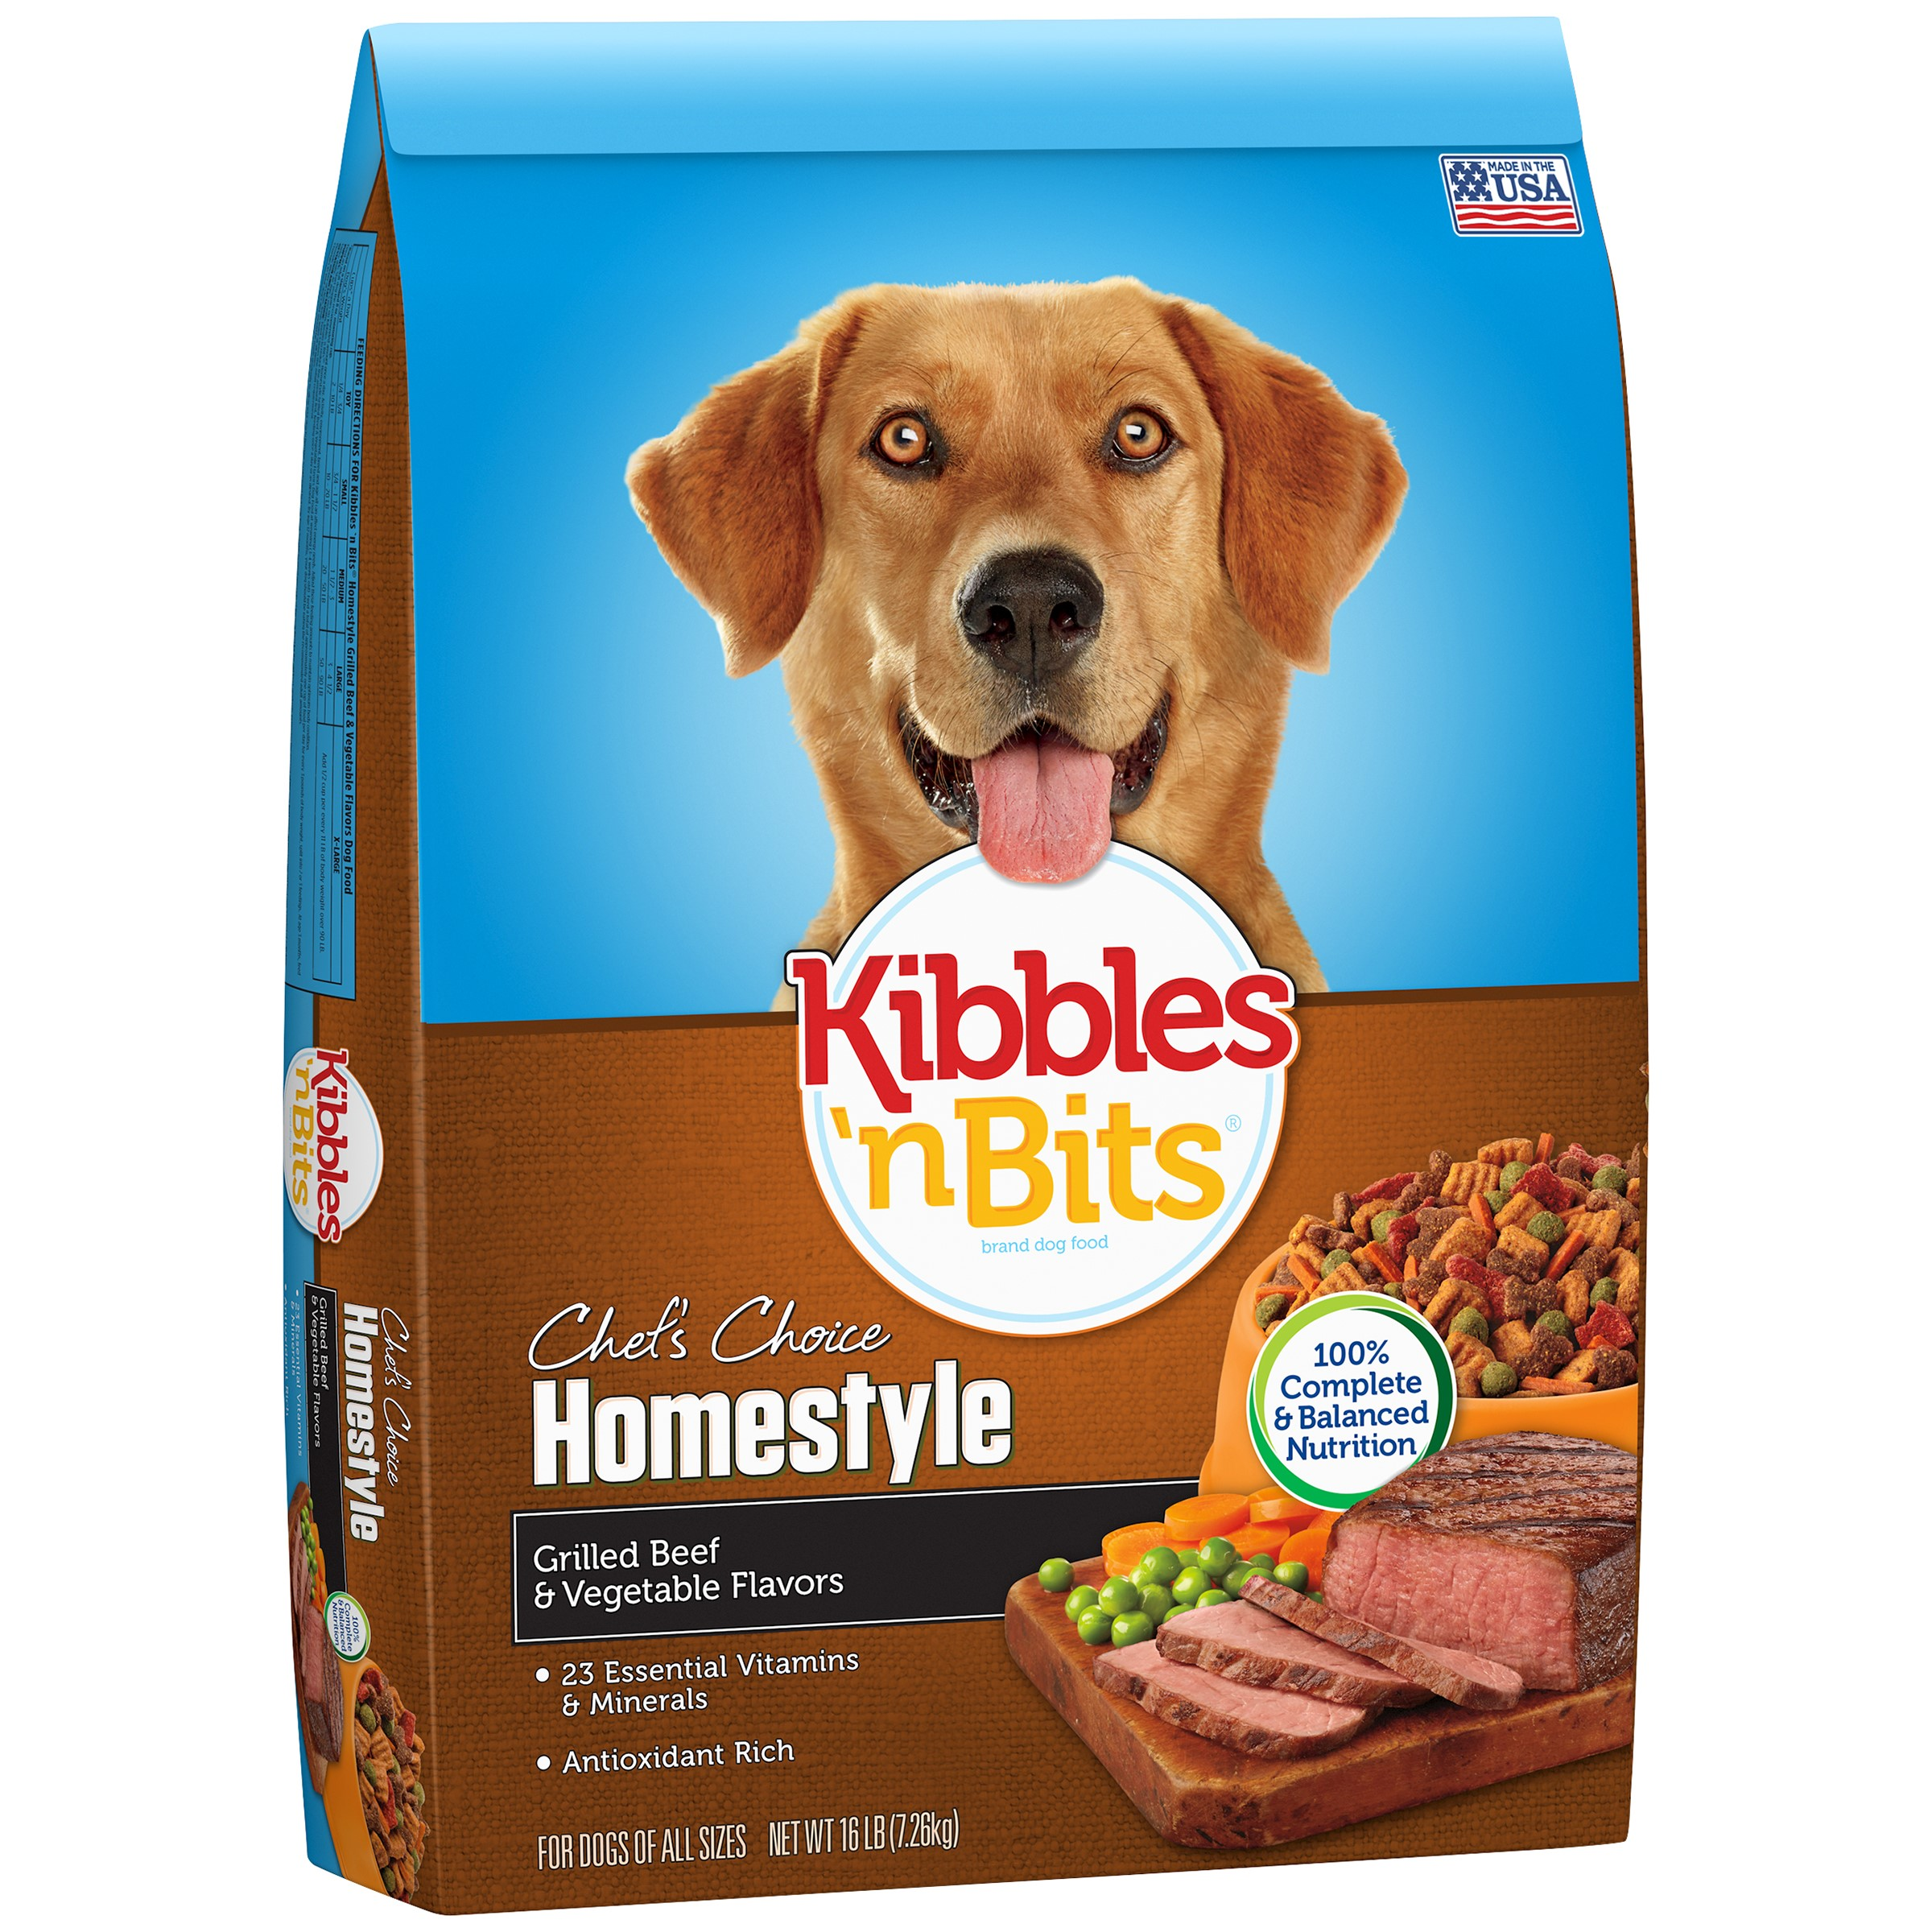 Kibbles 'n Bits Homestyle Grilled Beef Steak and Vegetable Flavor Dry Dog Food, 16 Pound